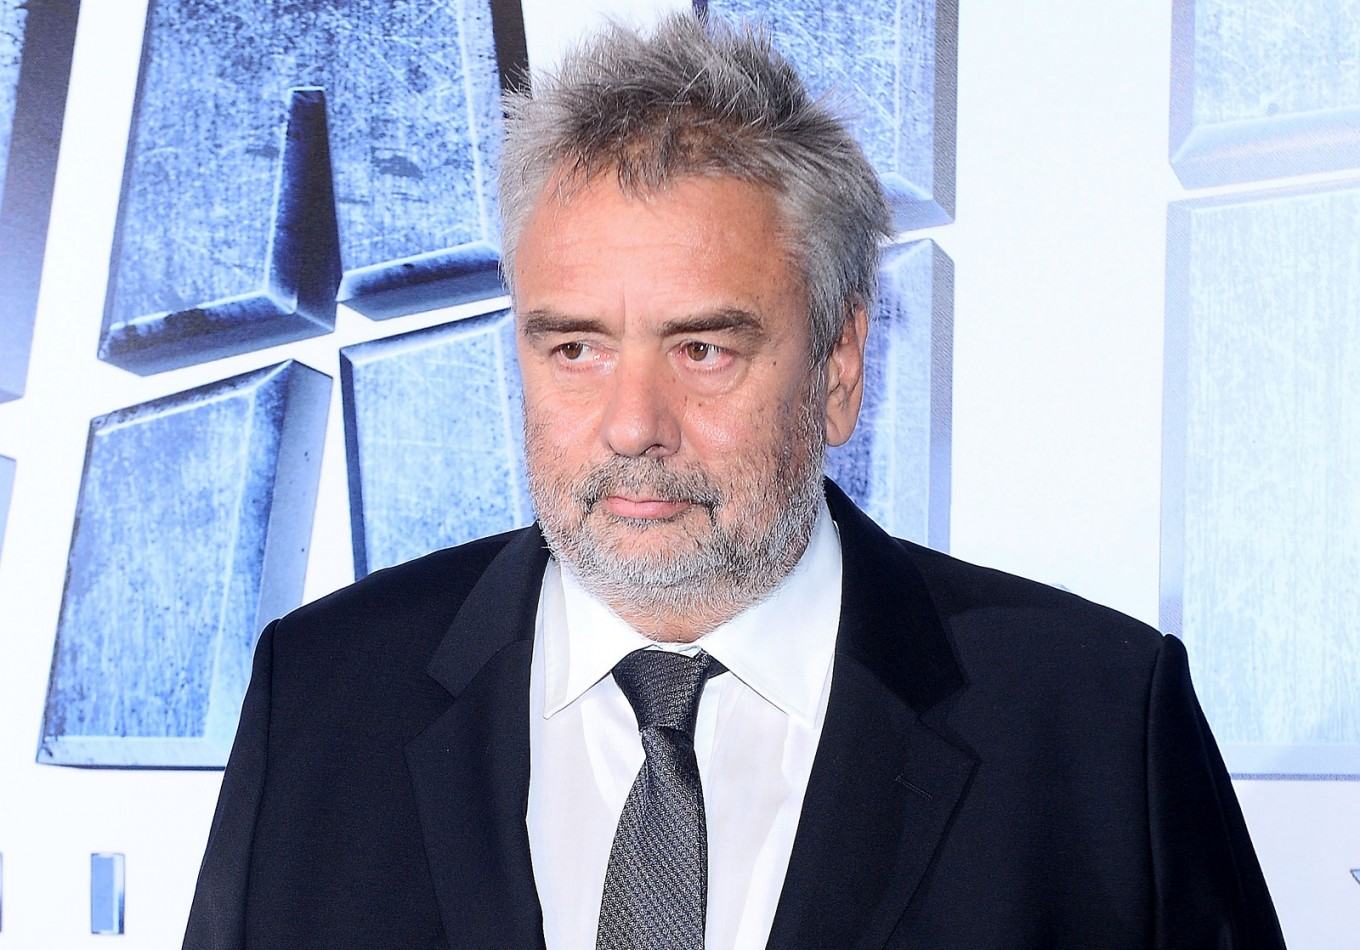 French film mogul Luc Besson hit by more sex assault claims